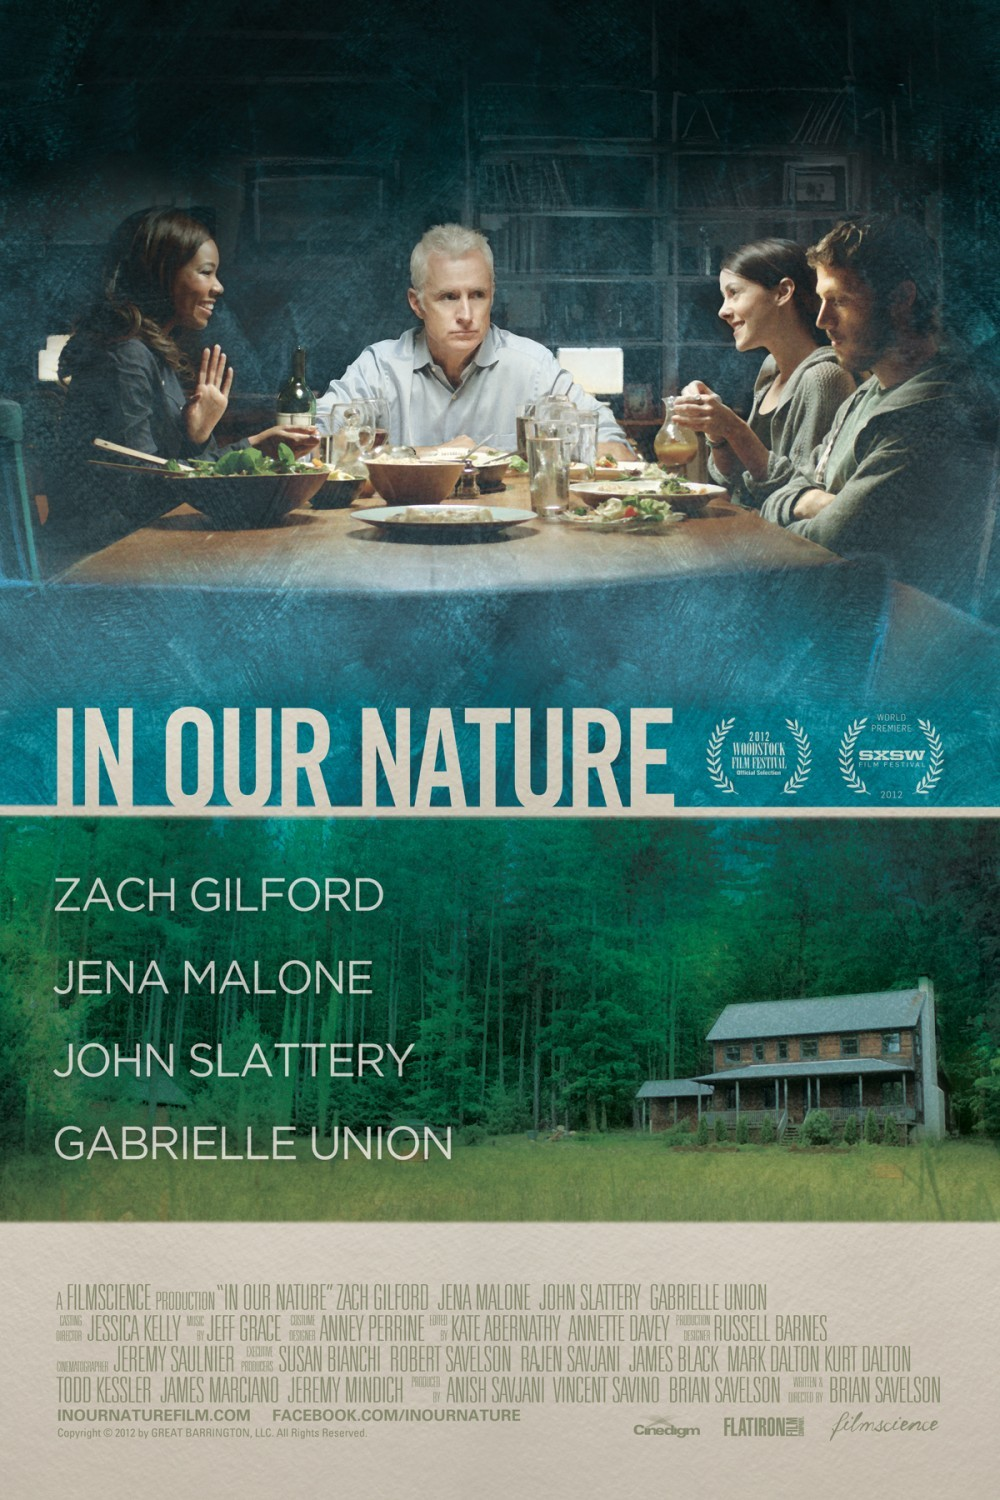 in-our-nature-poster01.jpg